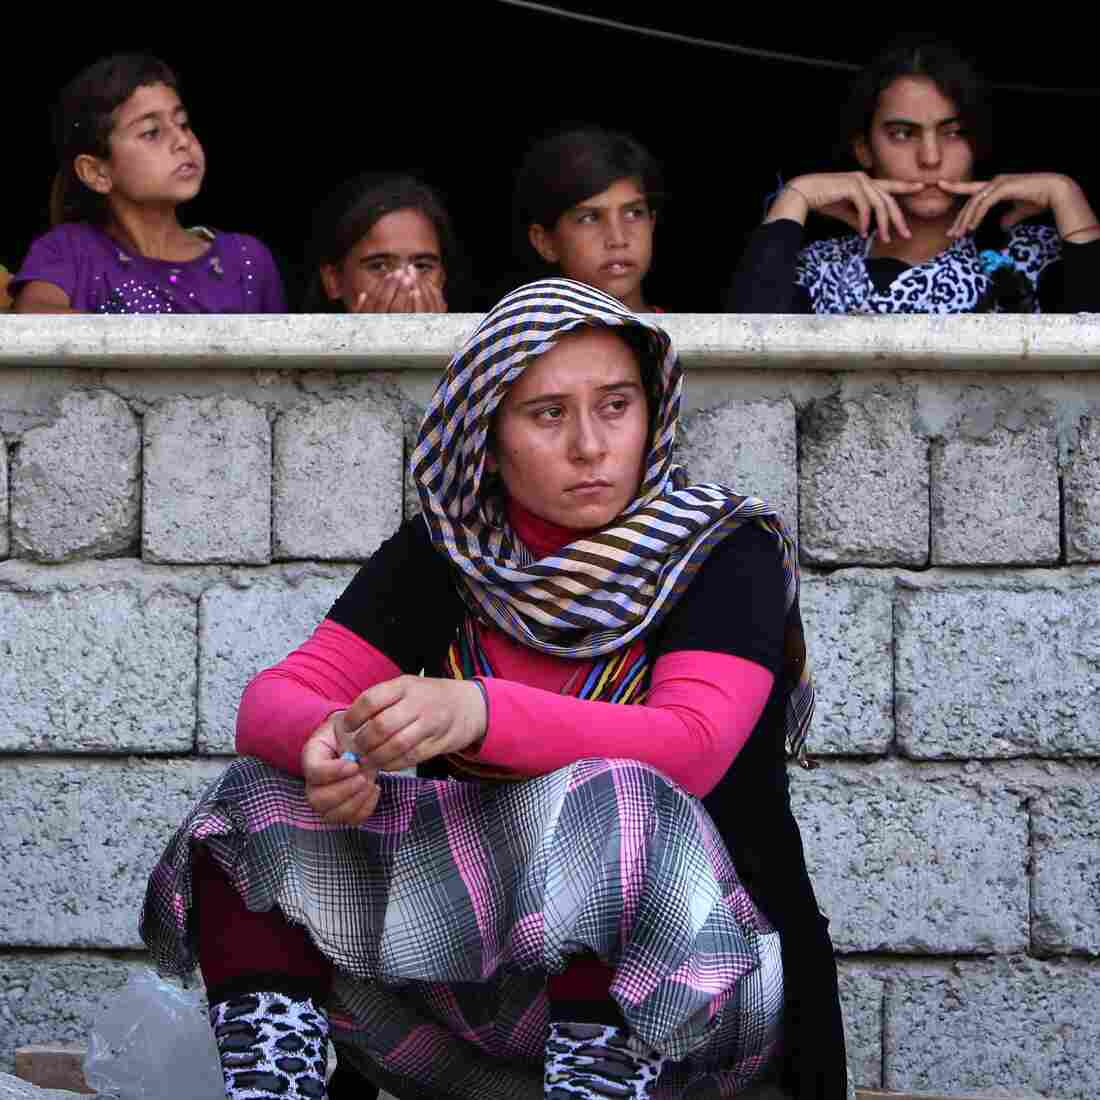 Iraq's Yazidis Appeal For Help In Finding Their Missing Women